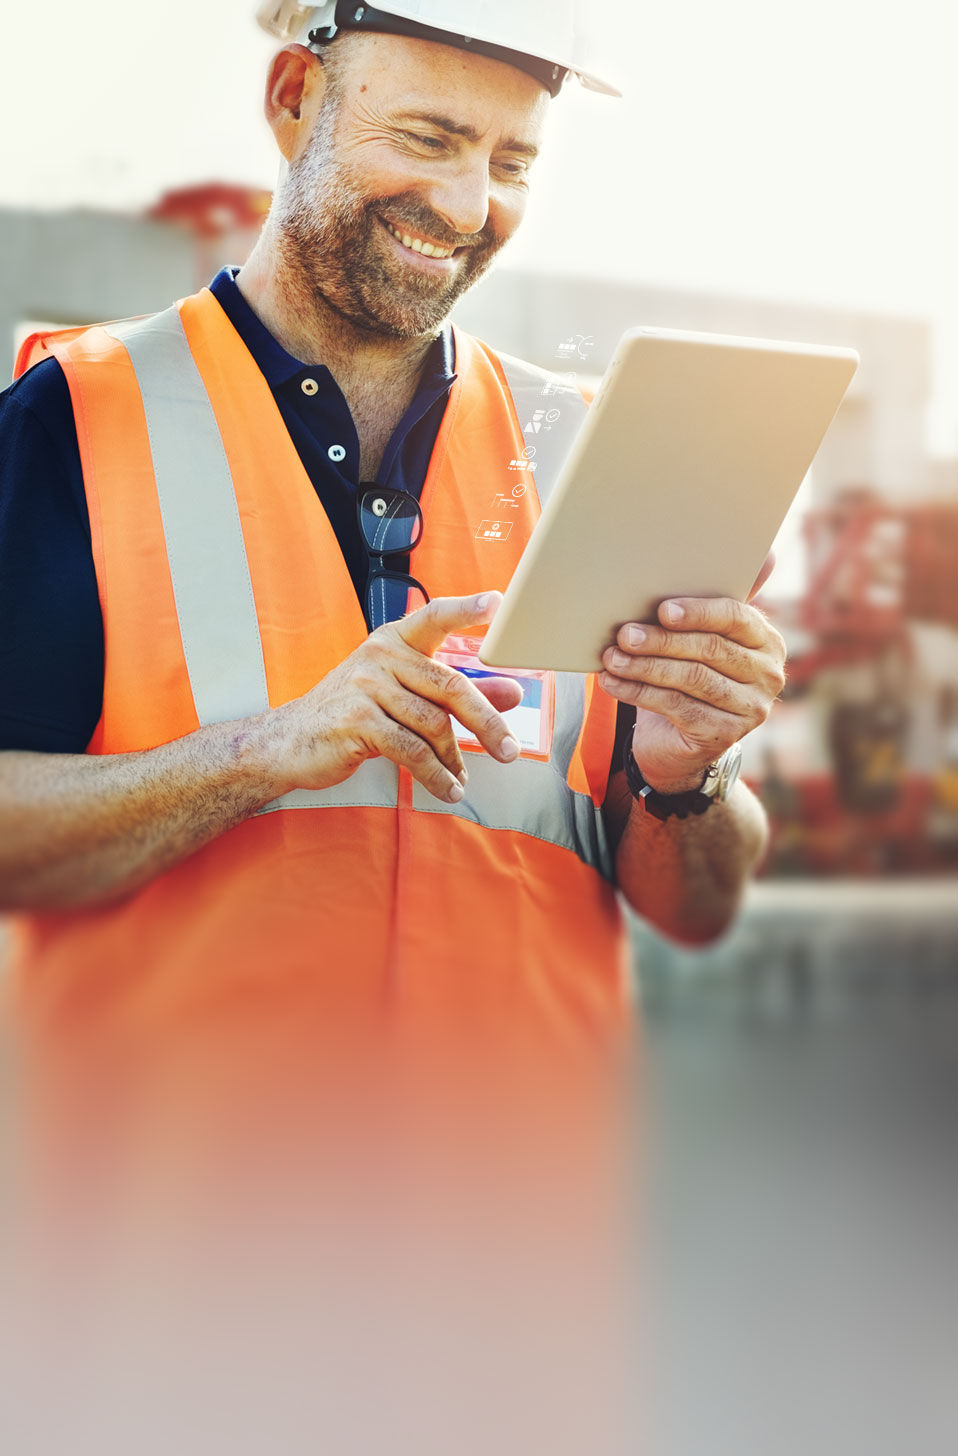 Man on construction site checking tablet to see delivery status